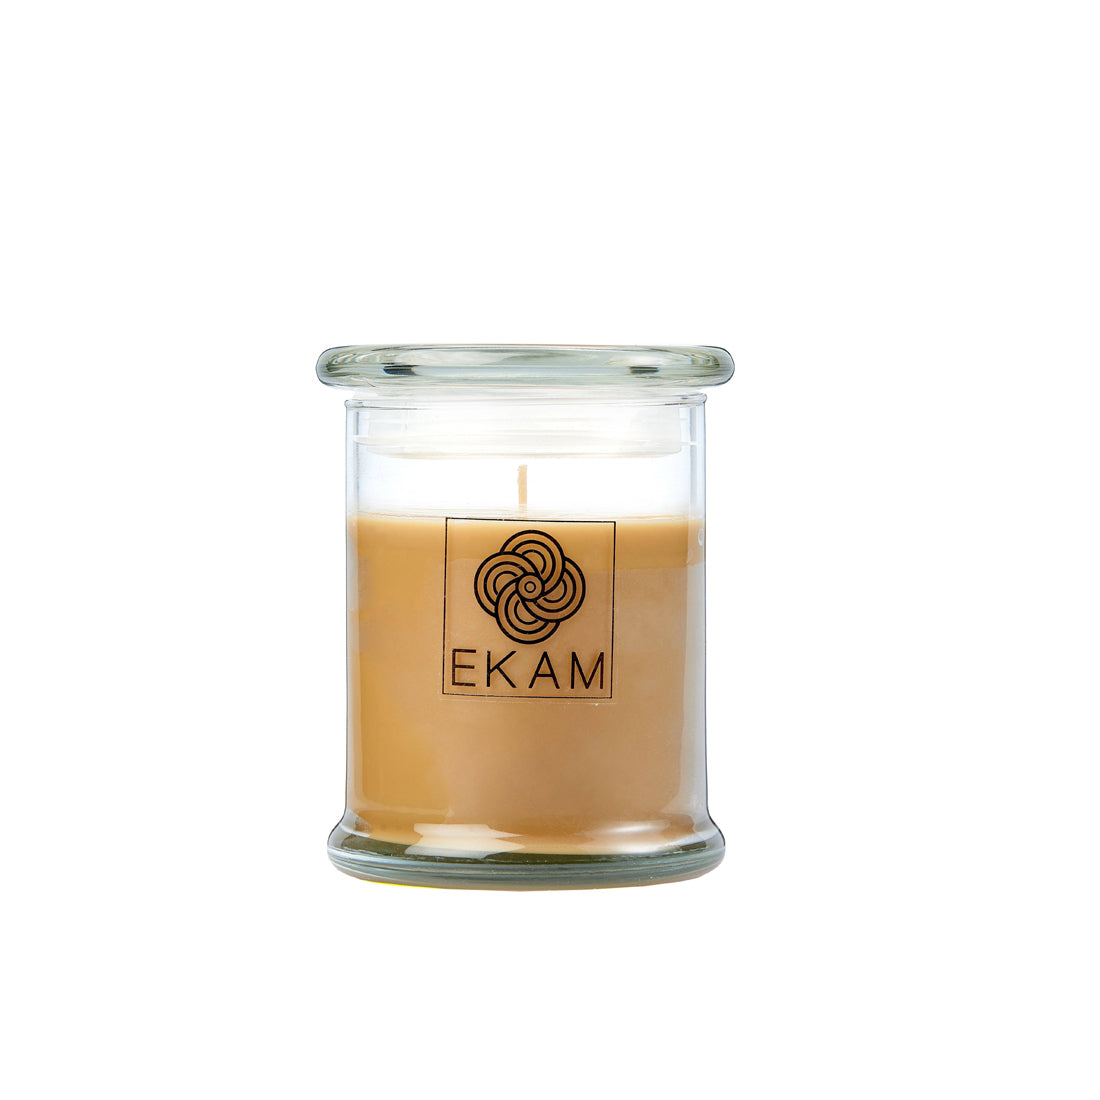 Teakwood Scented Candle